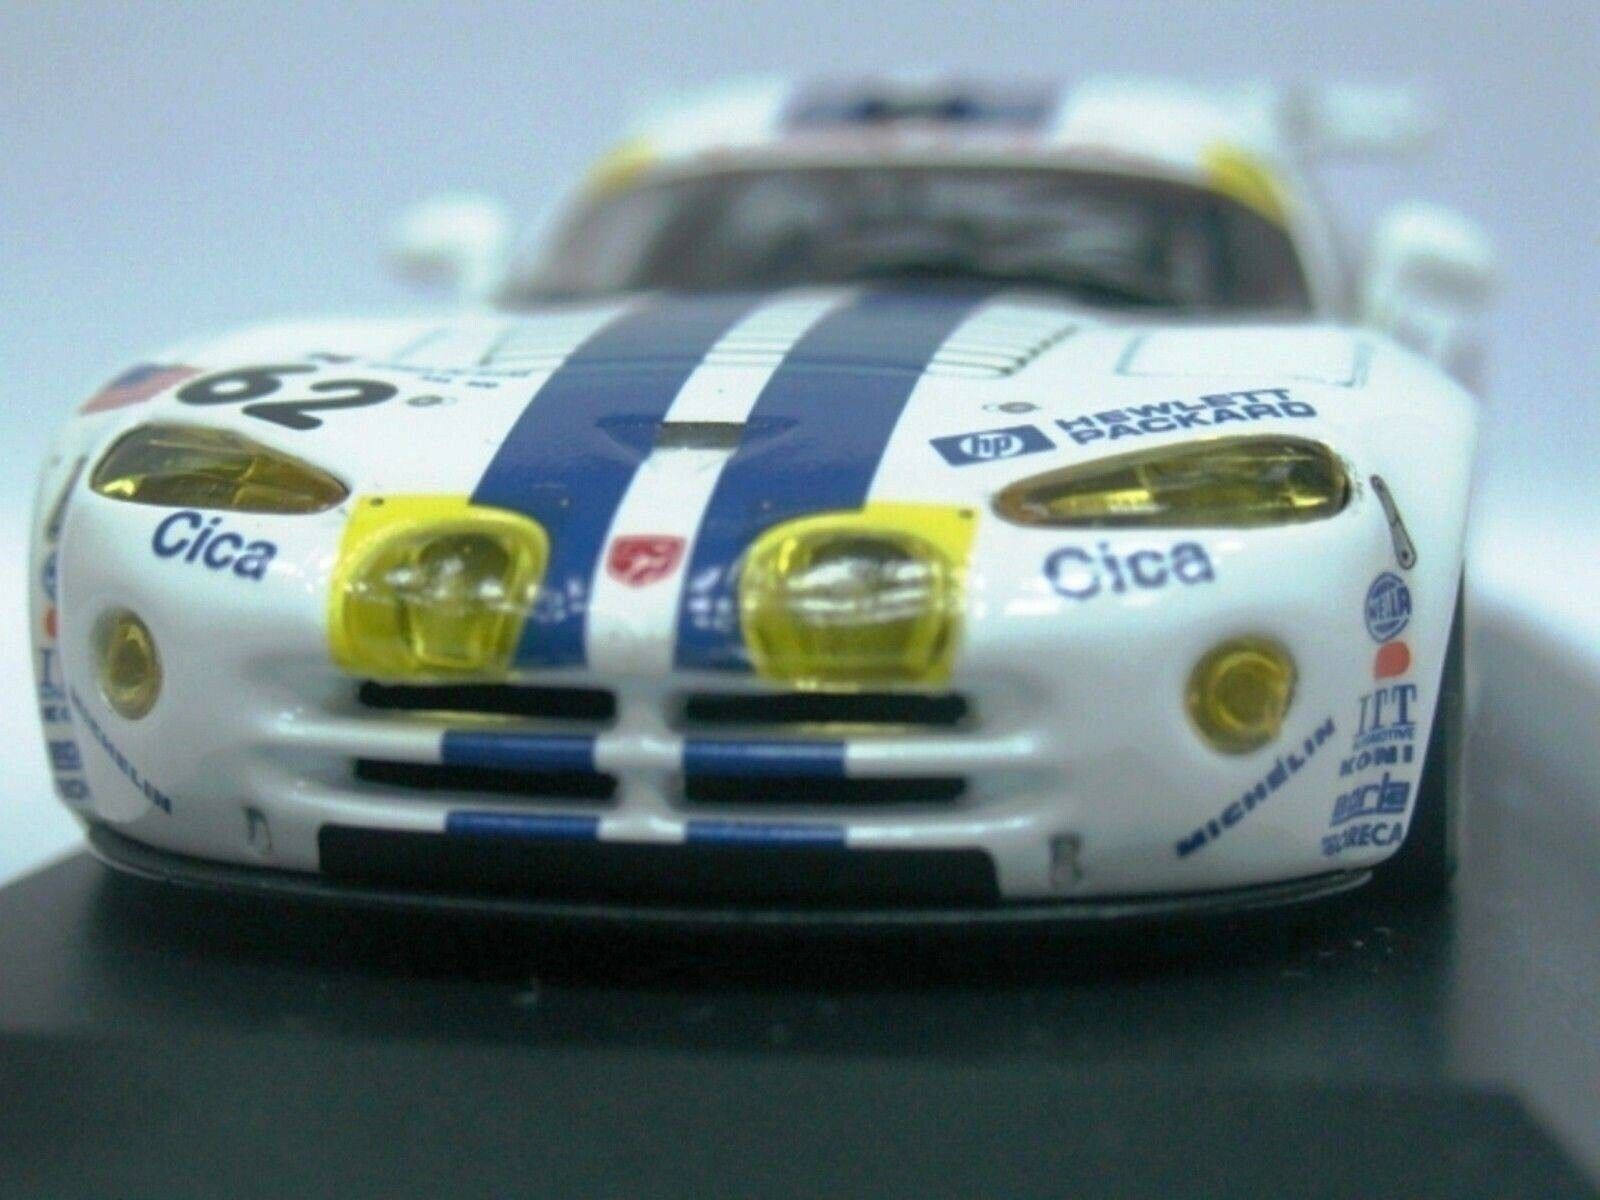 WOW EXTREMELY RARE Chrysler Viper 1997 GTS-R Duez Le Mans 1 43 Minichamps